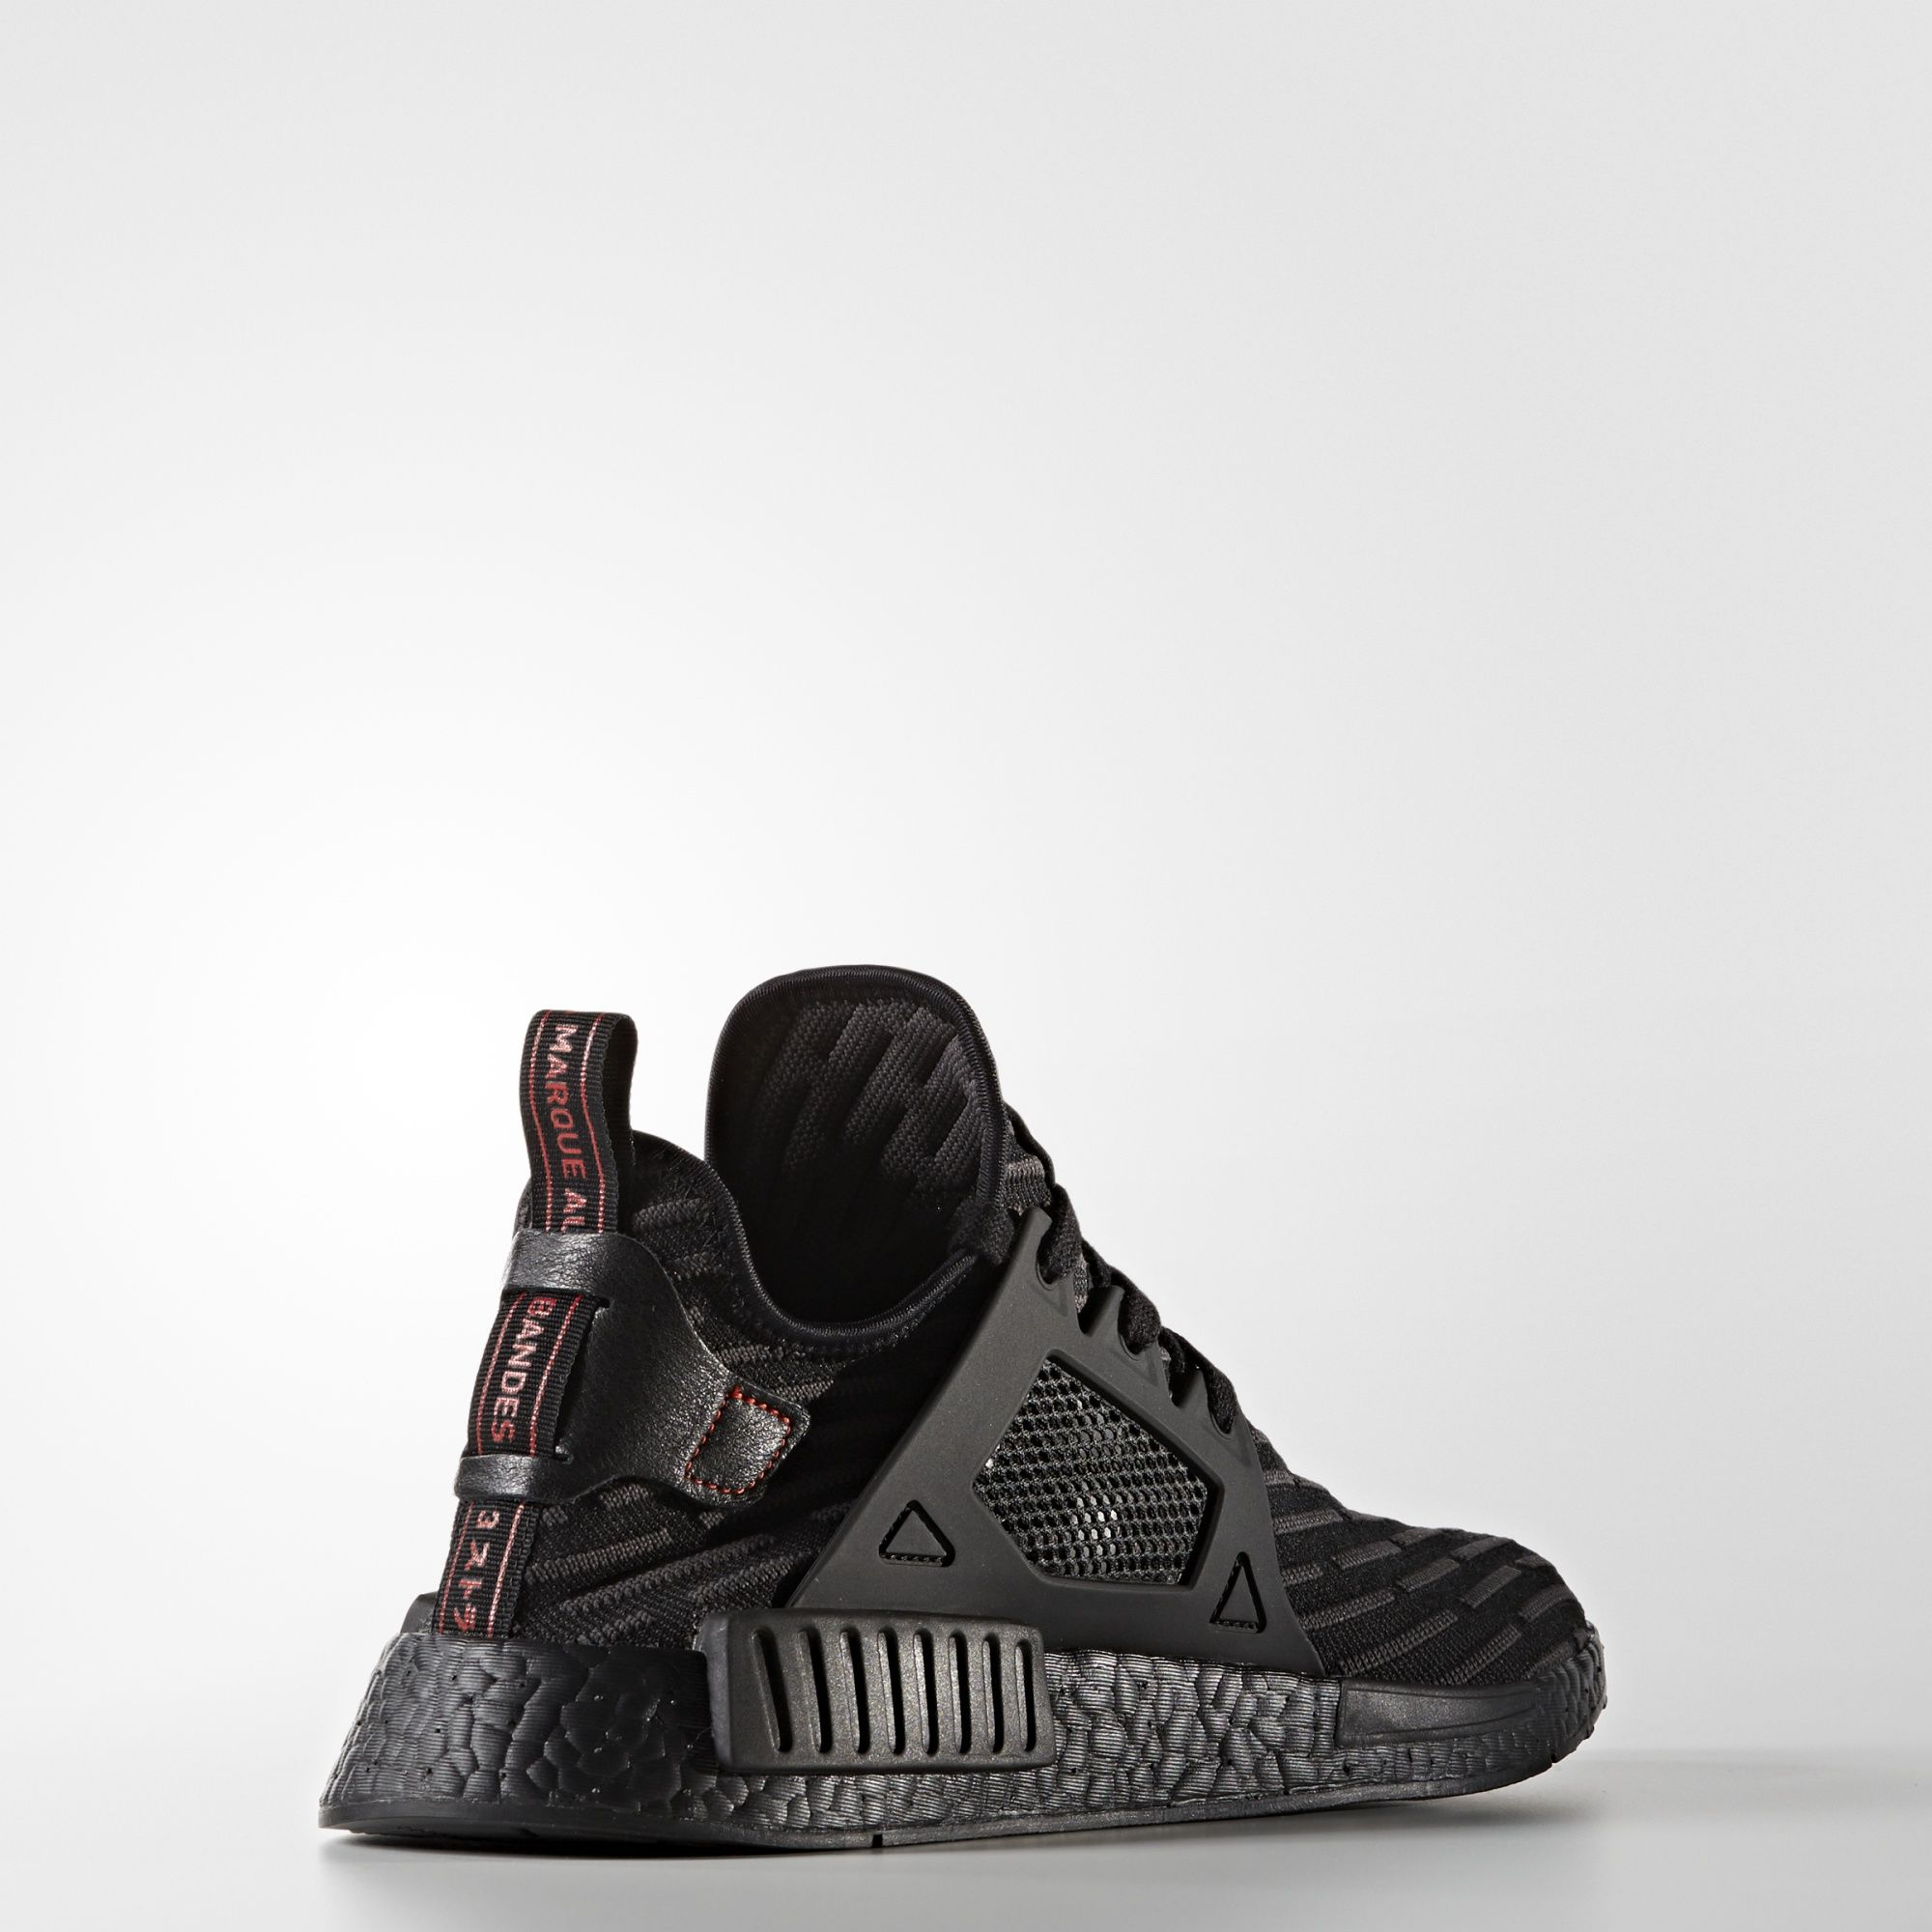 adidas nmd xr1 primeknit black core red BA7214 4